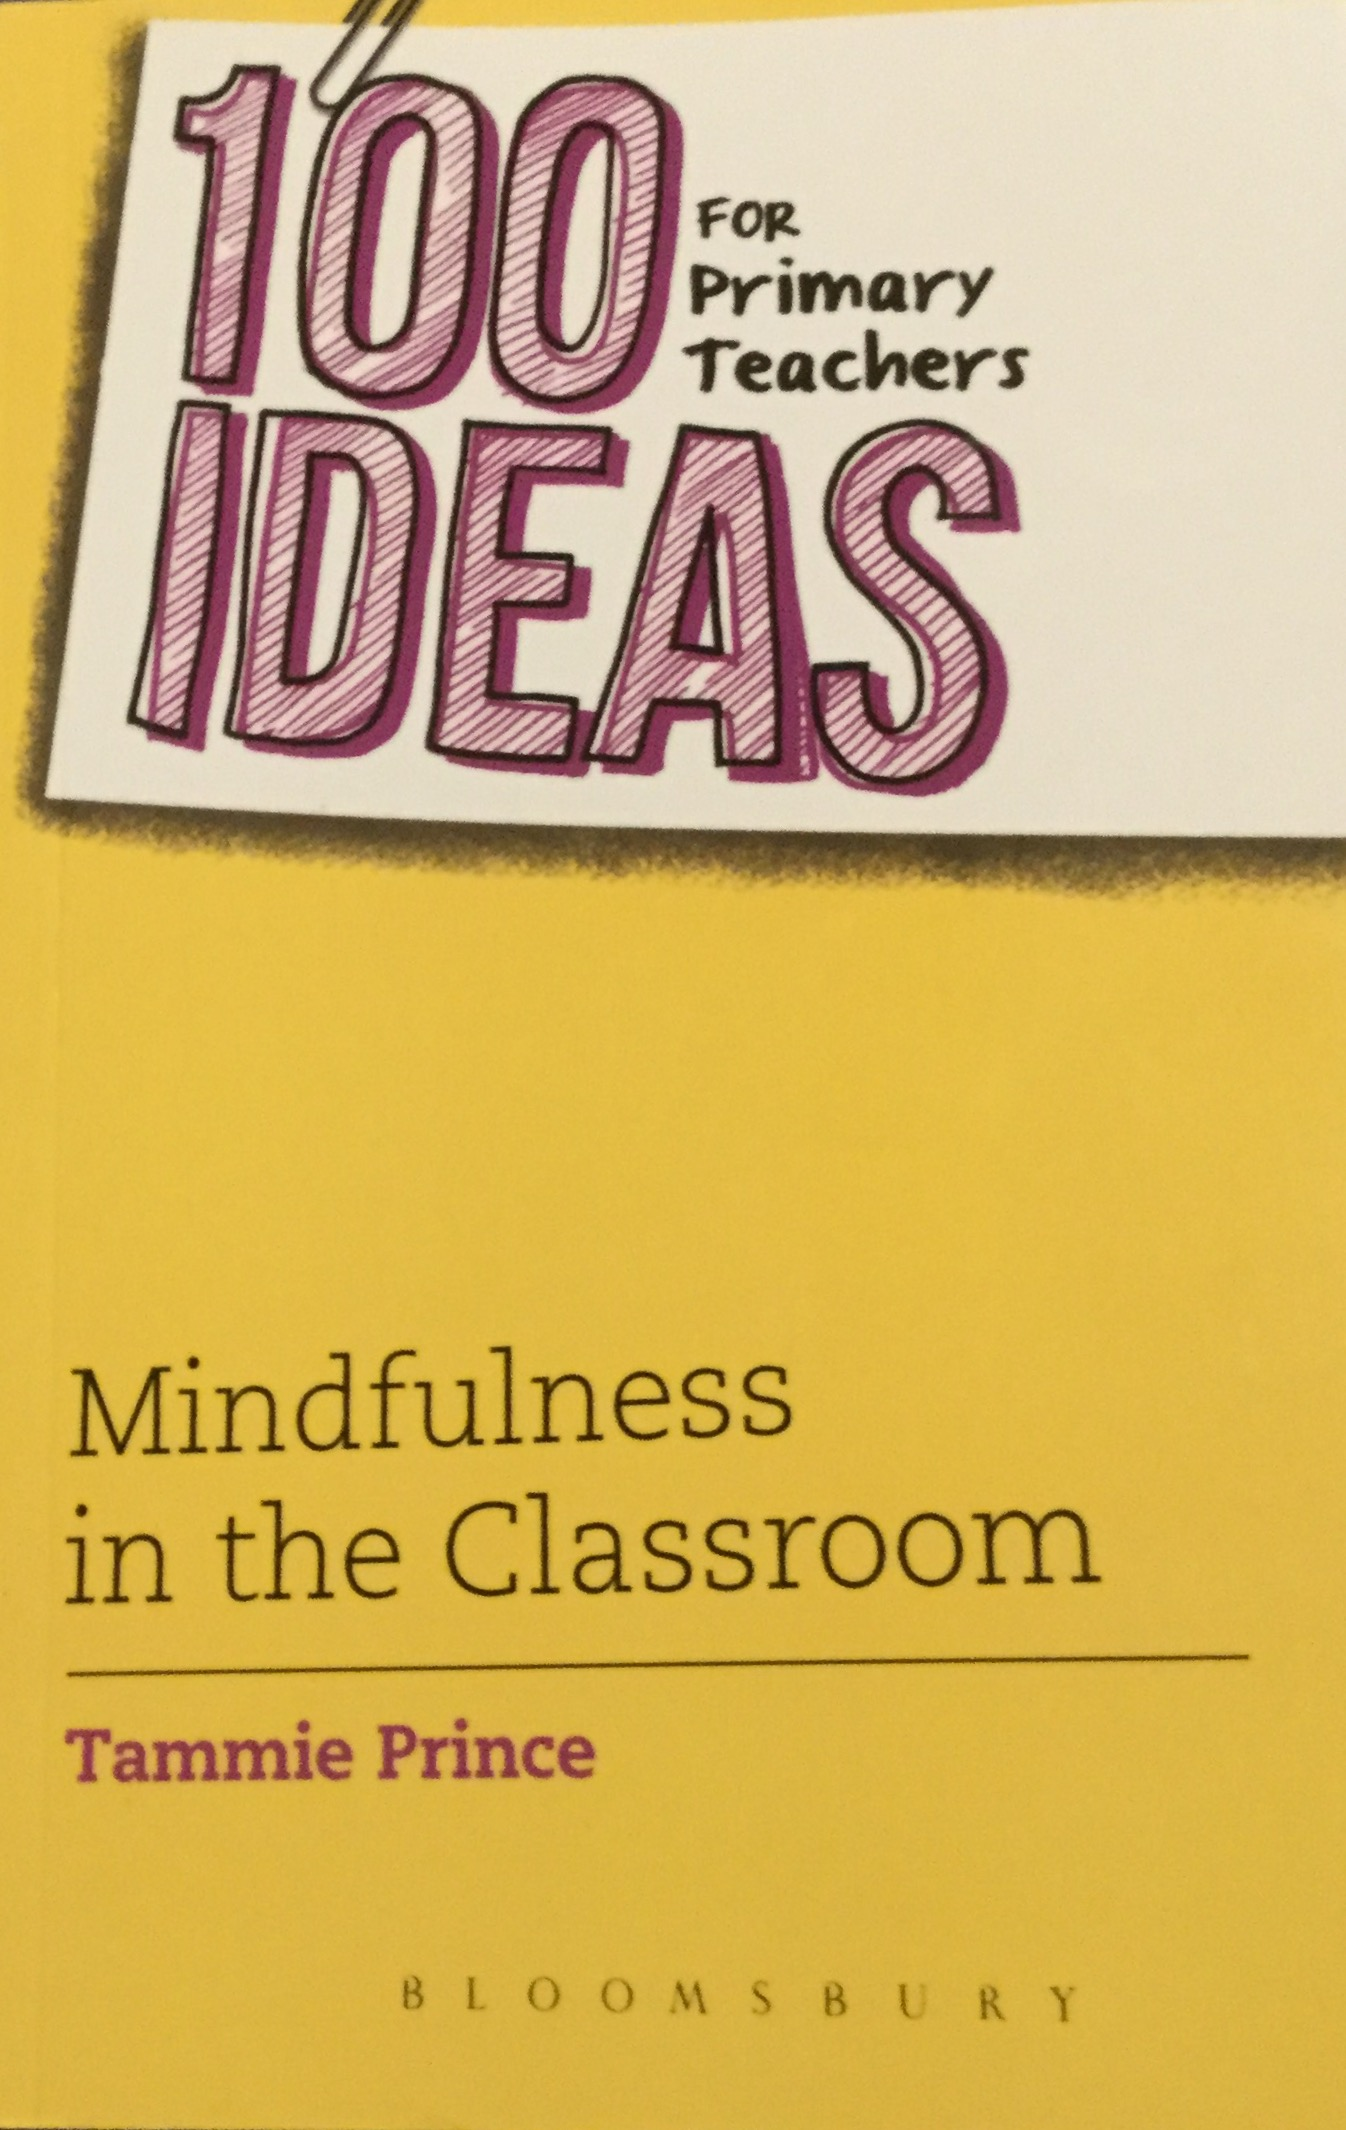 Book Review by Kerry Macfarlane – 100 Ideas for Primary Teachers: Mindfulness In The Classroom